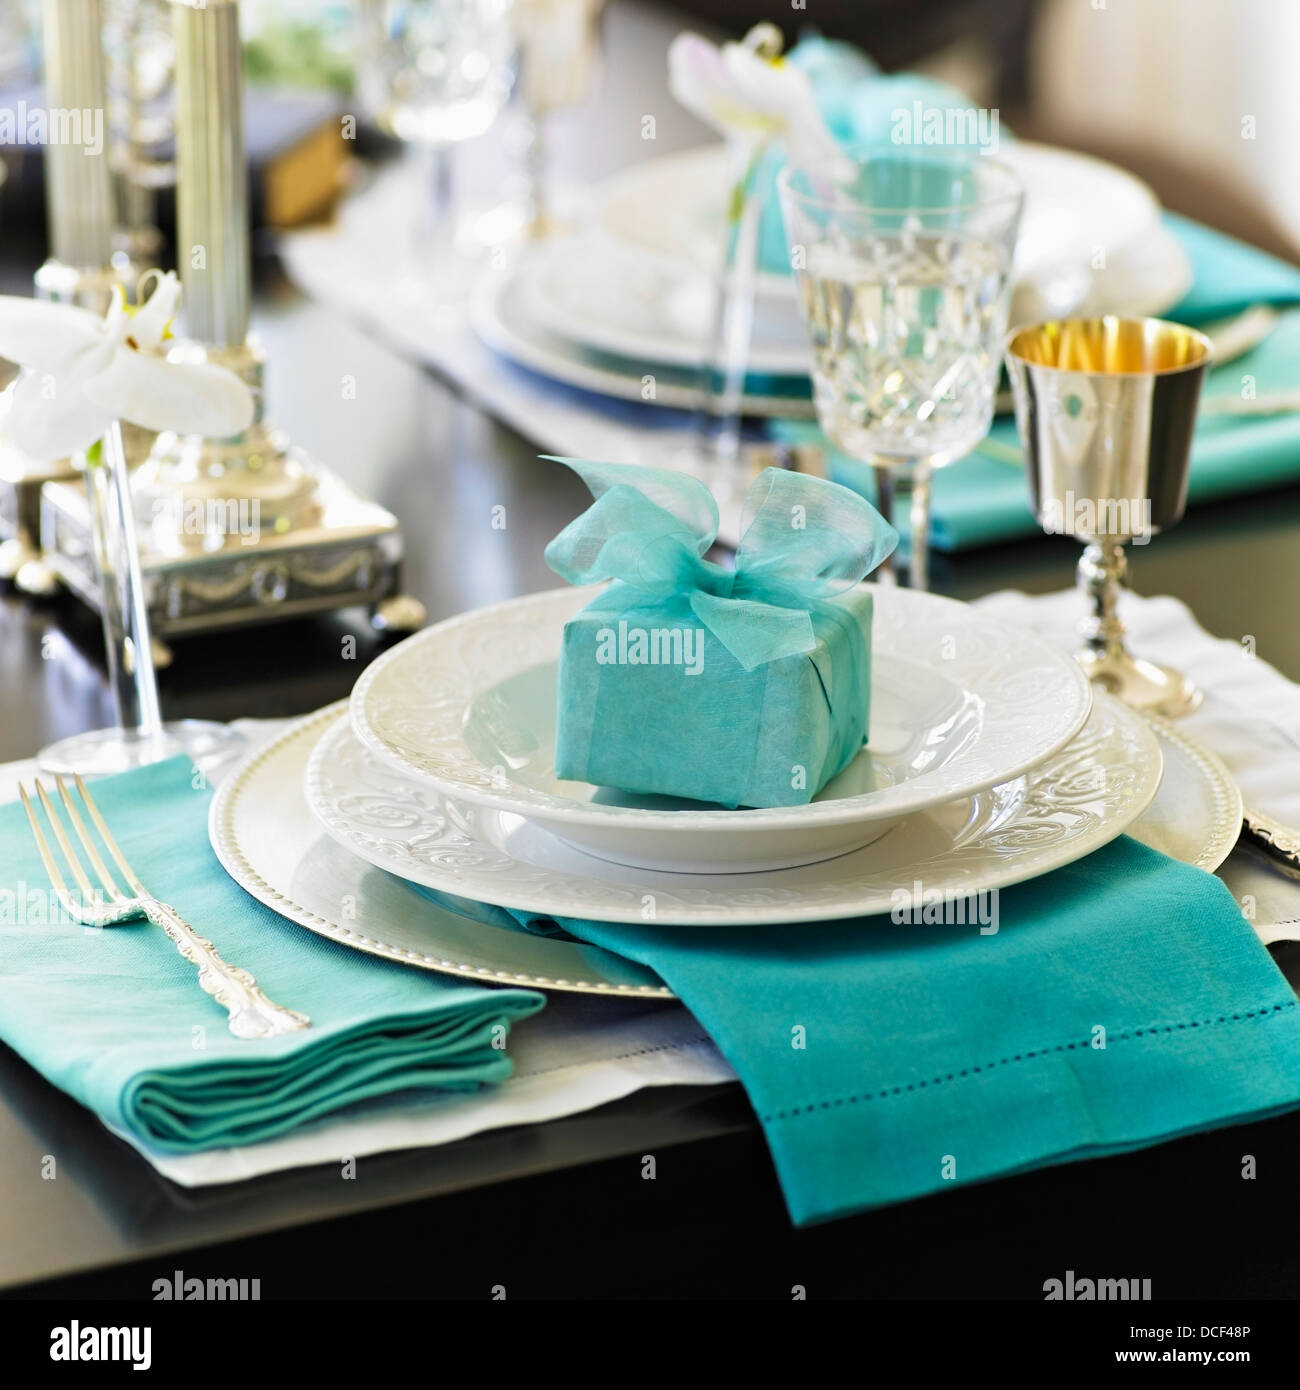 Formal table setting with white dishes and blue gift and napkins;Victoria vancouver island british columbia canada & Formal table setting with white dishes and blue gift and Stock ...